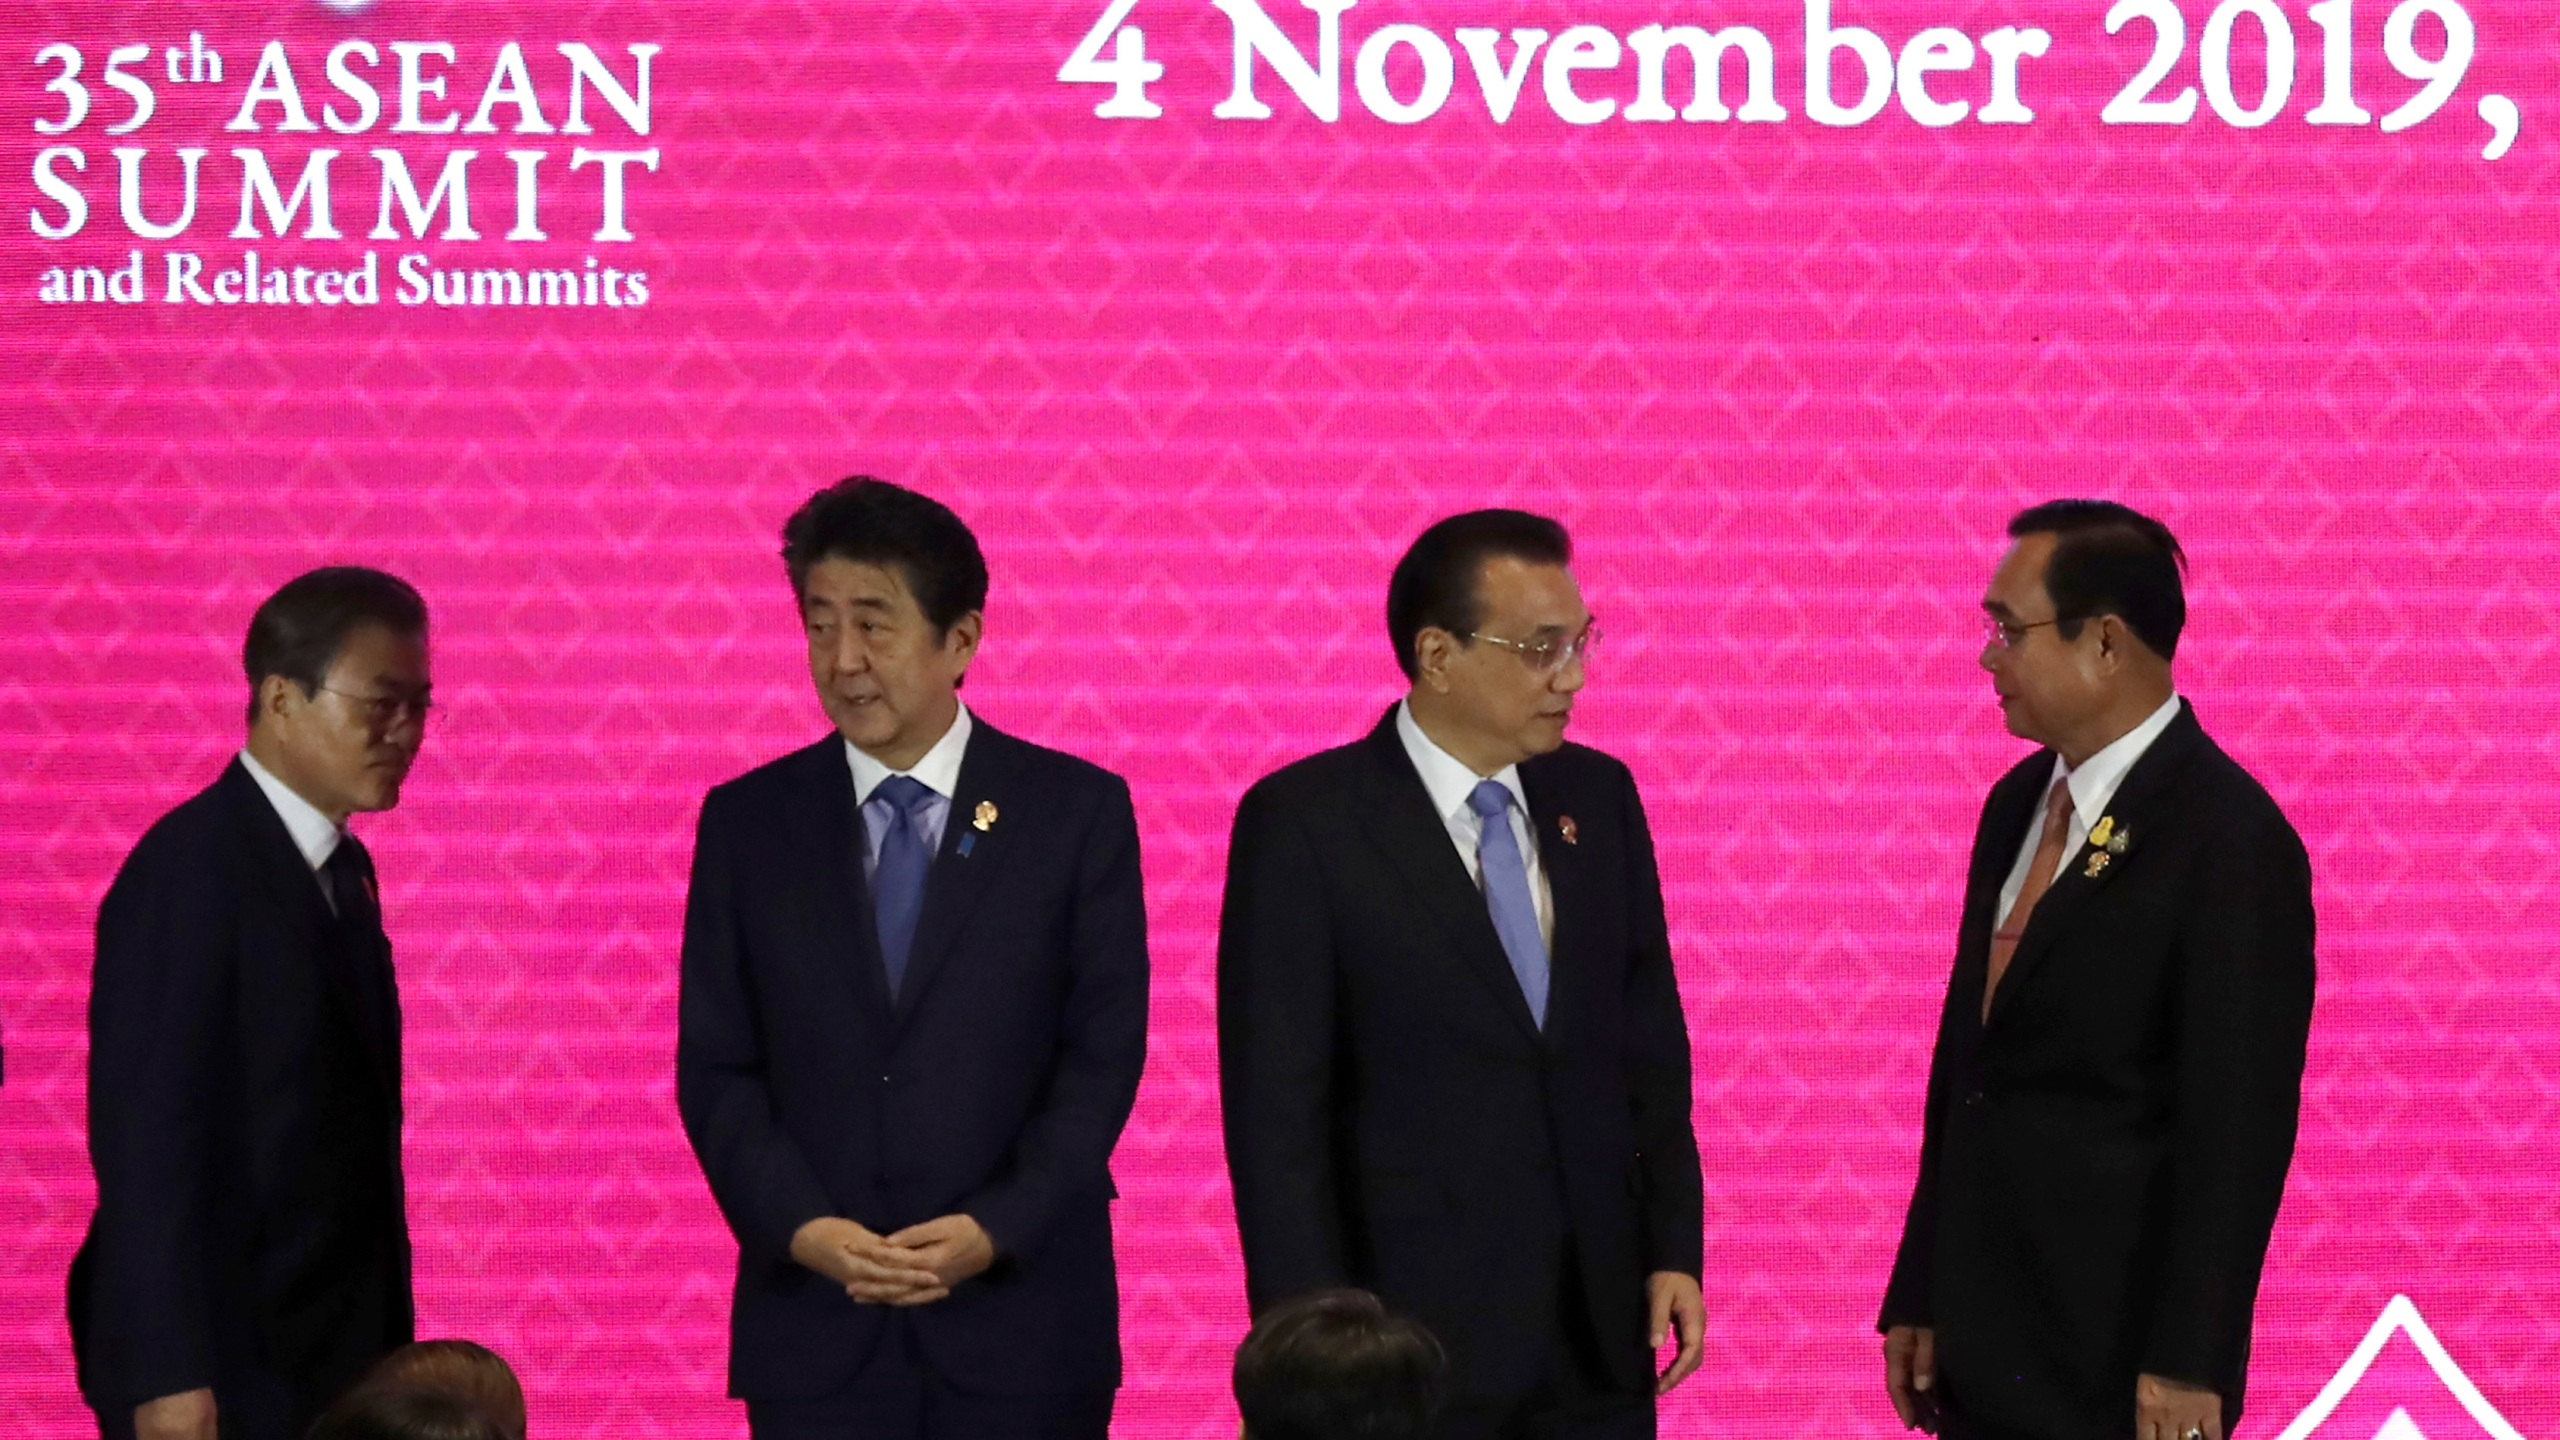 Moon Jae-in, Shinzo Abe, Li Keqiang, Prayuth Chan-ocha